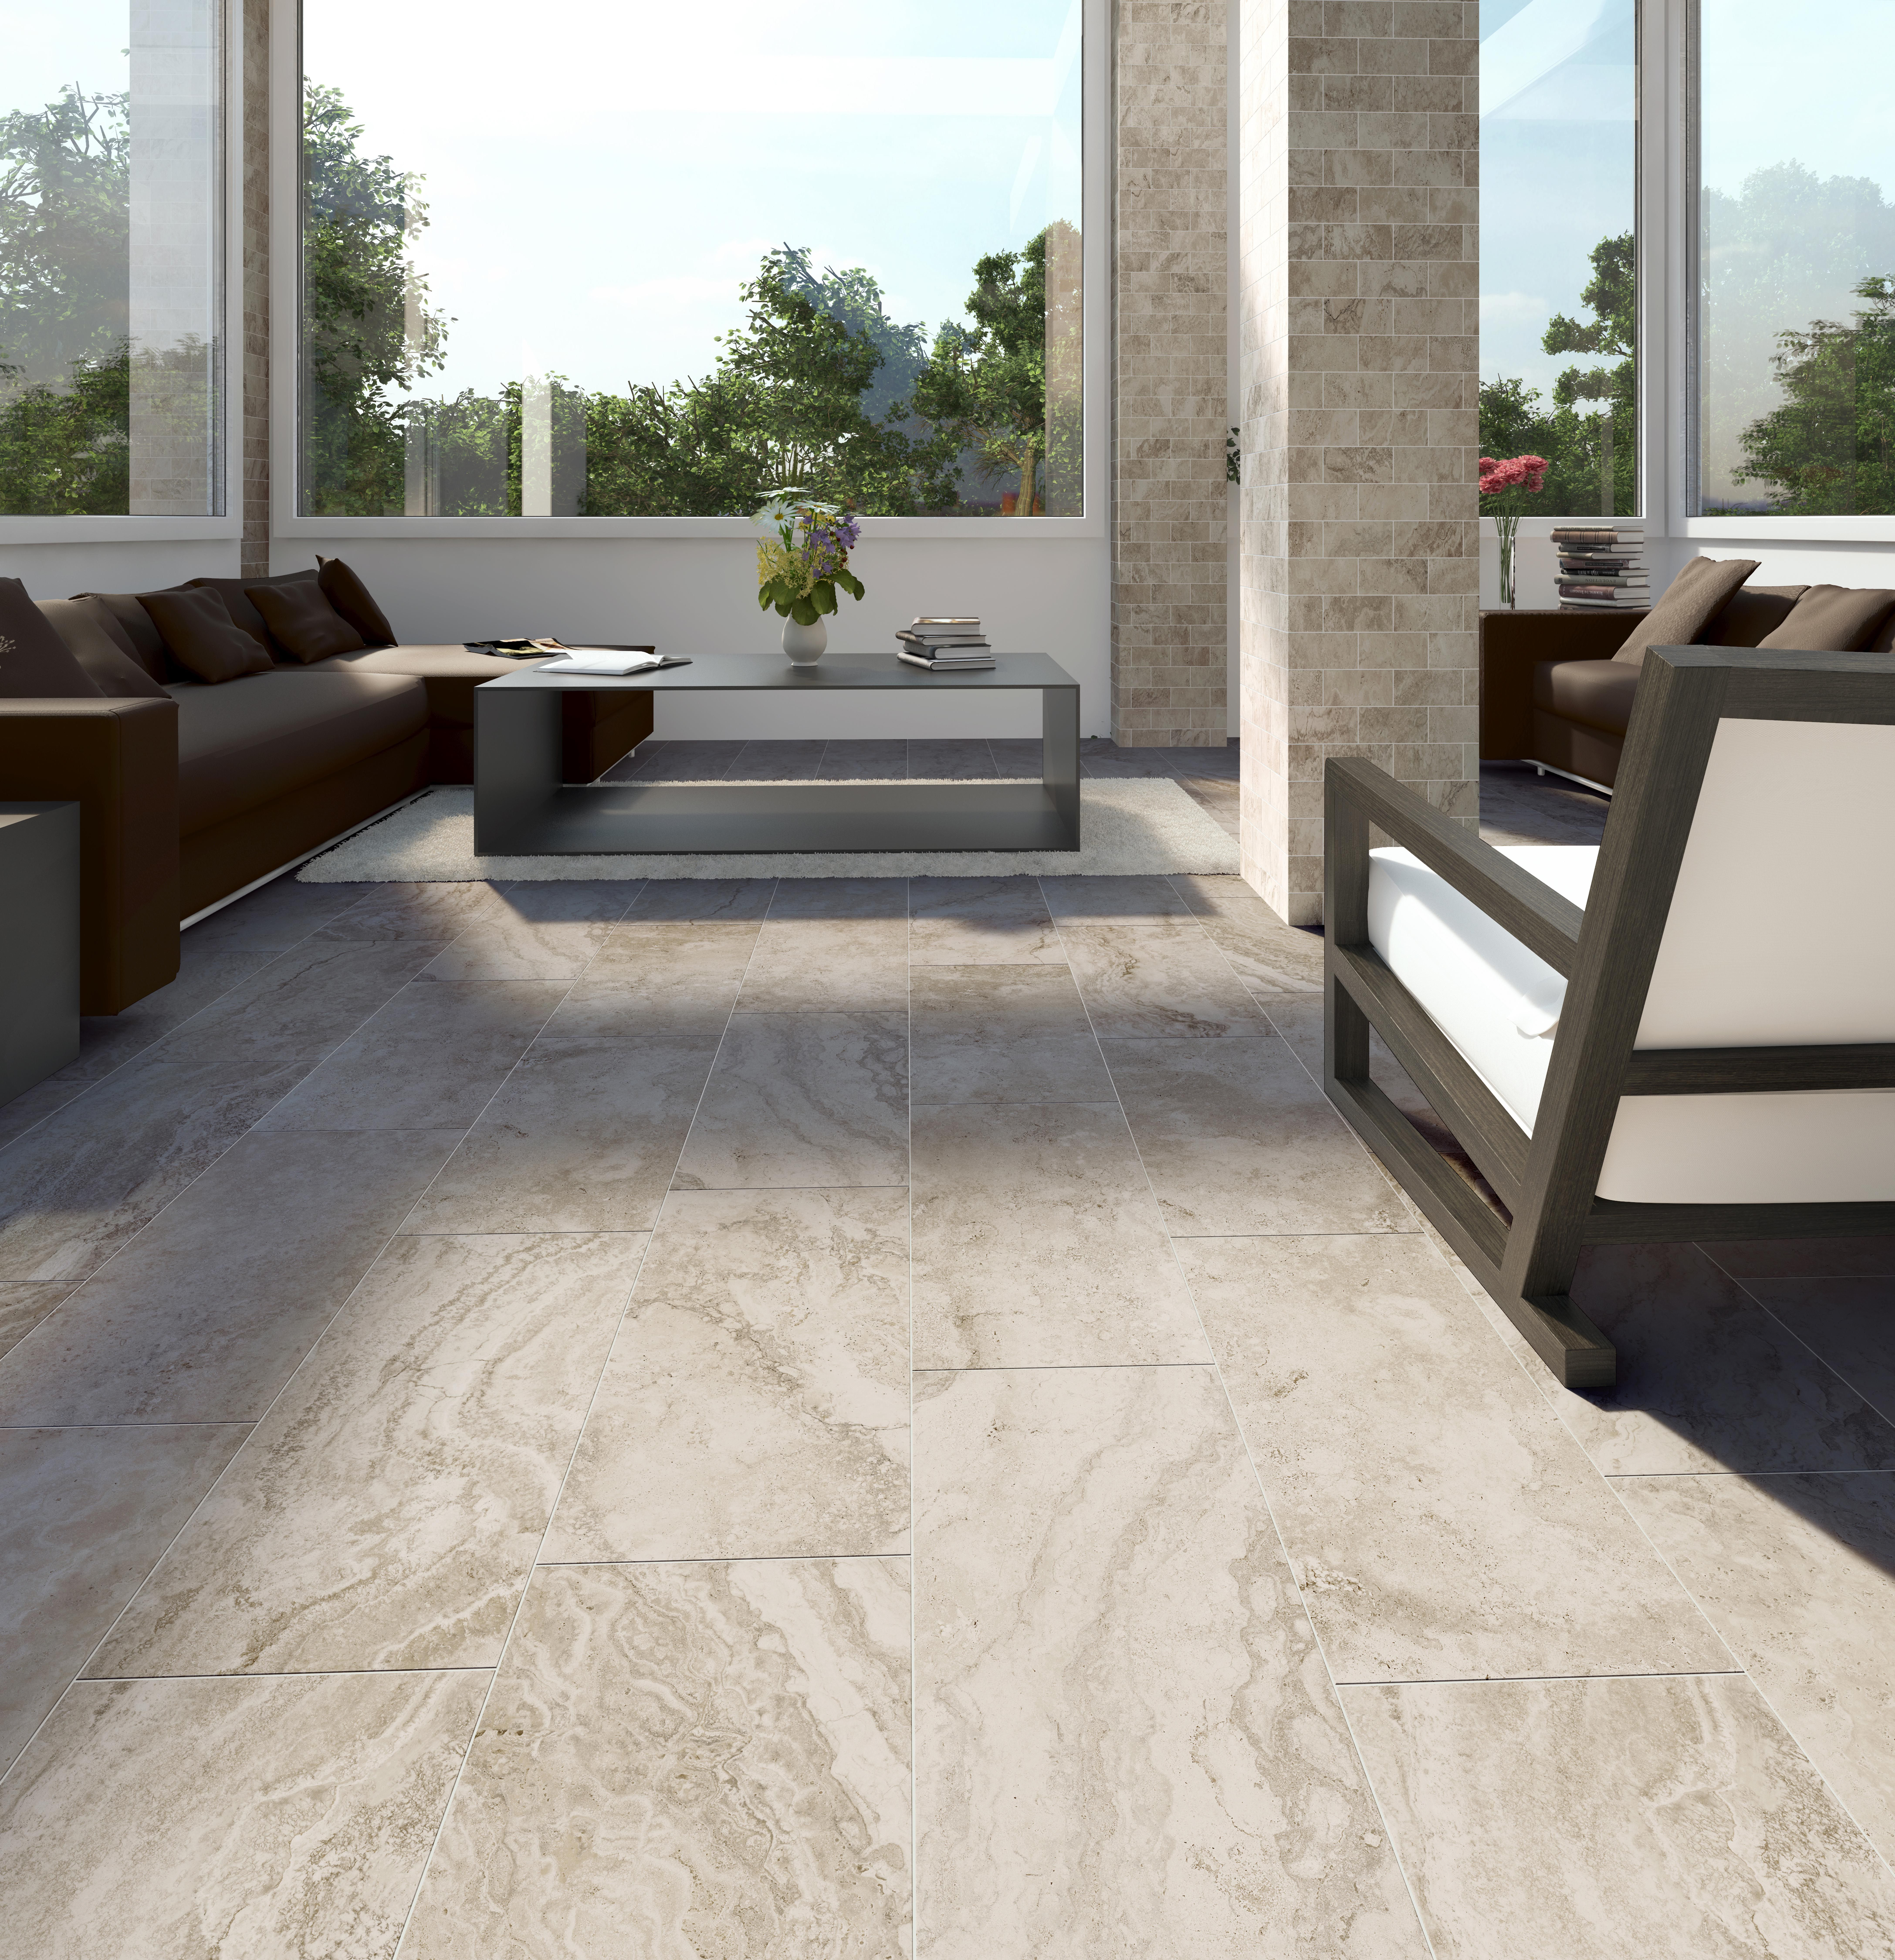 Geneseo updated travertine look porcelain tile The good look but no